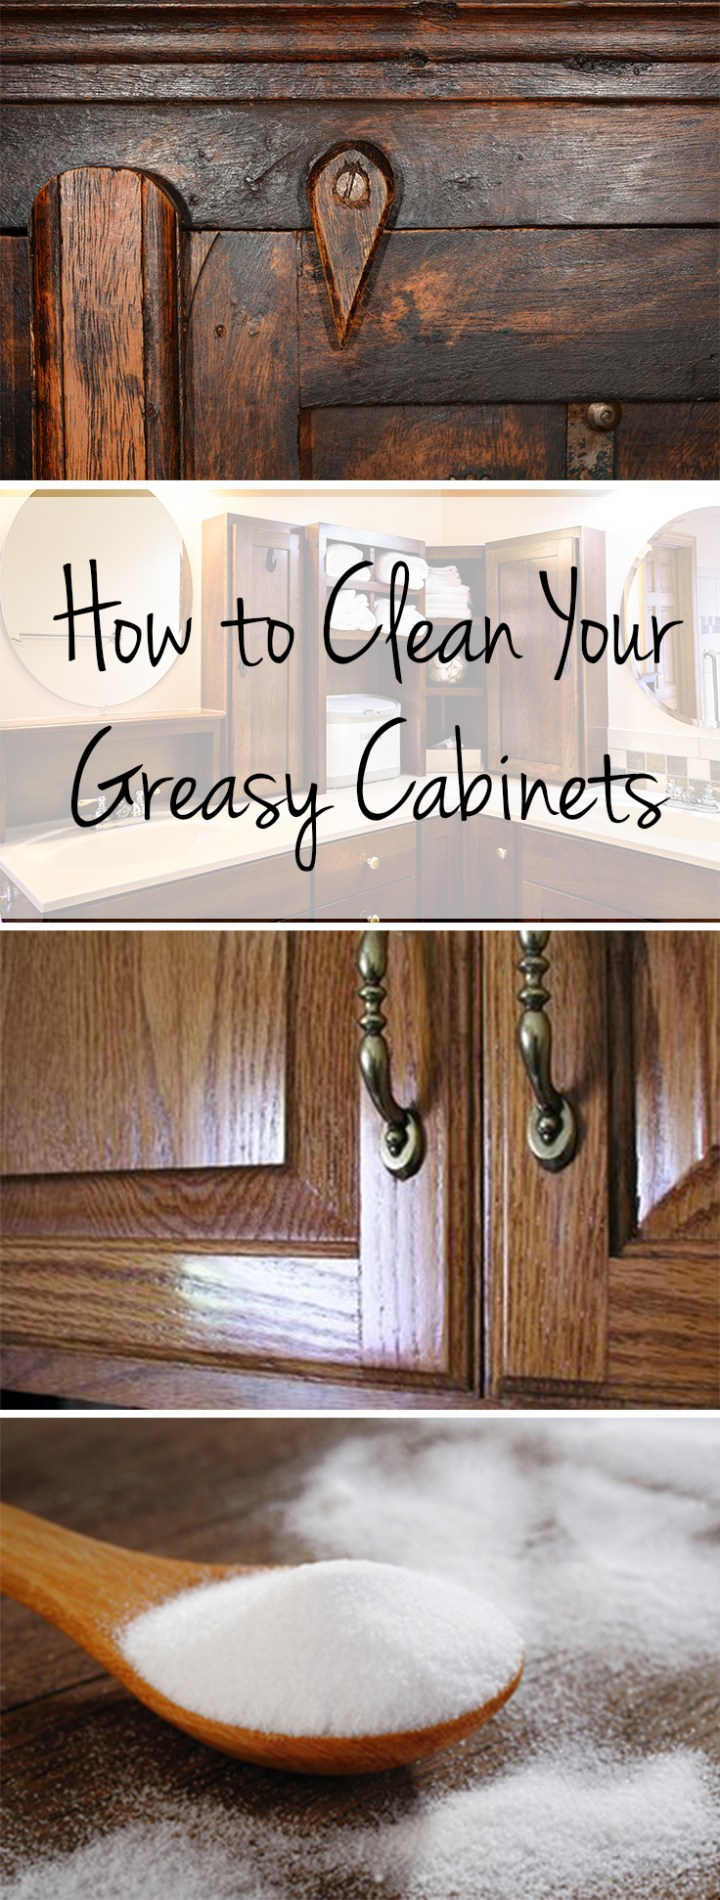 Cleaning Tips Hacks Por Pin Clean Home Your Greasy Cabinets